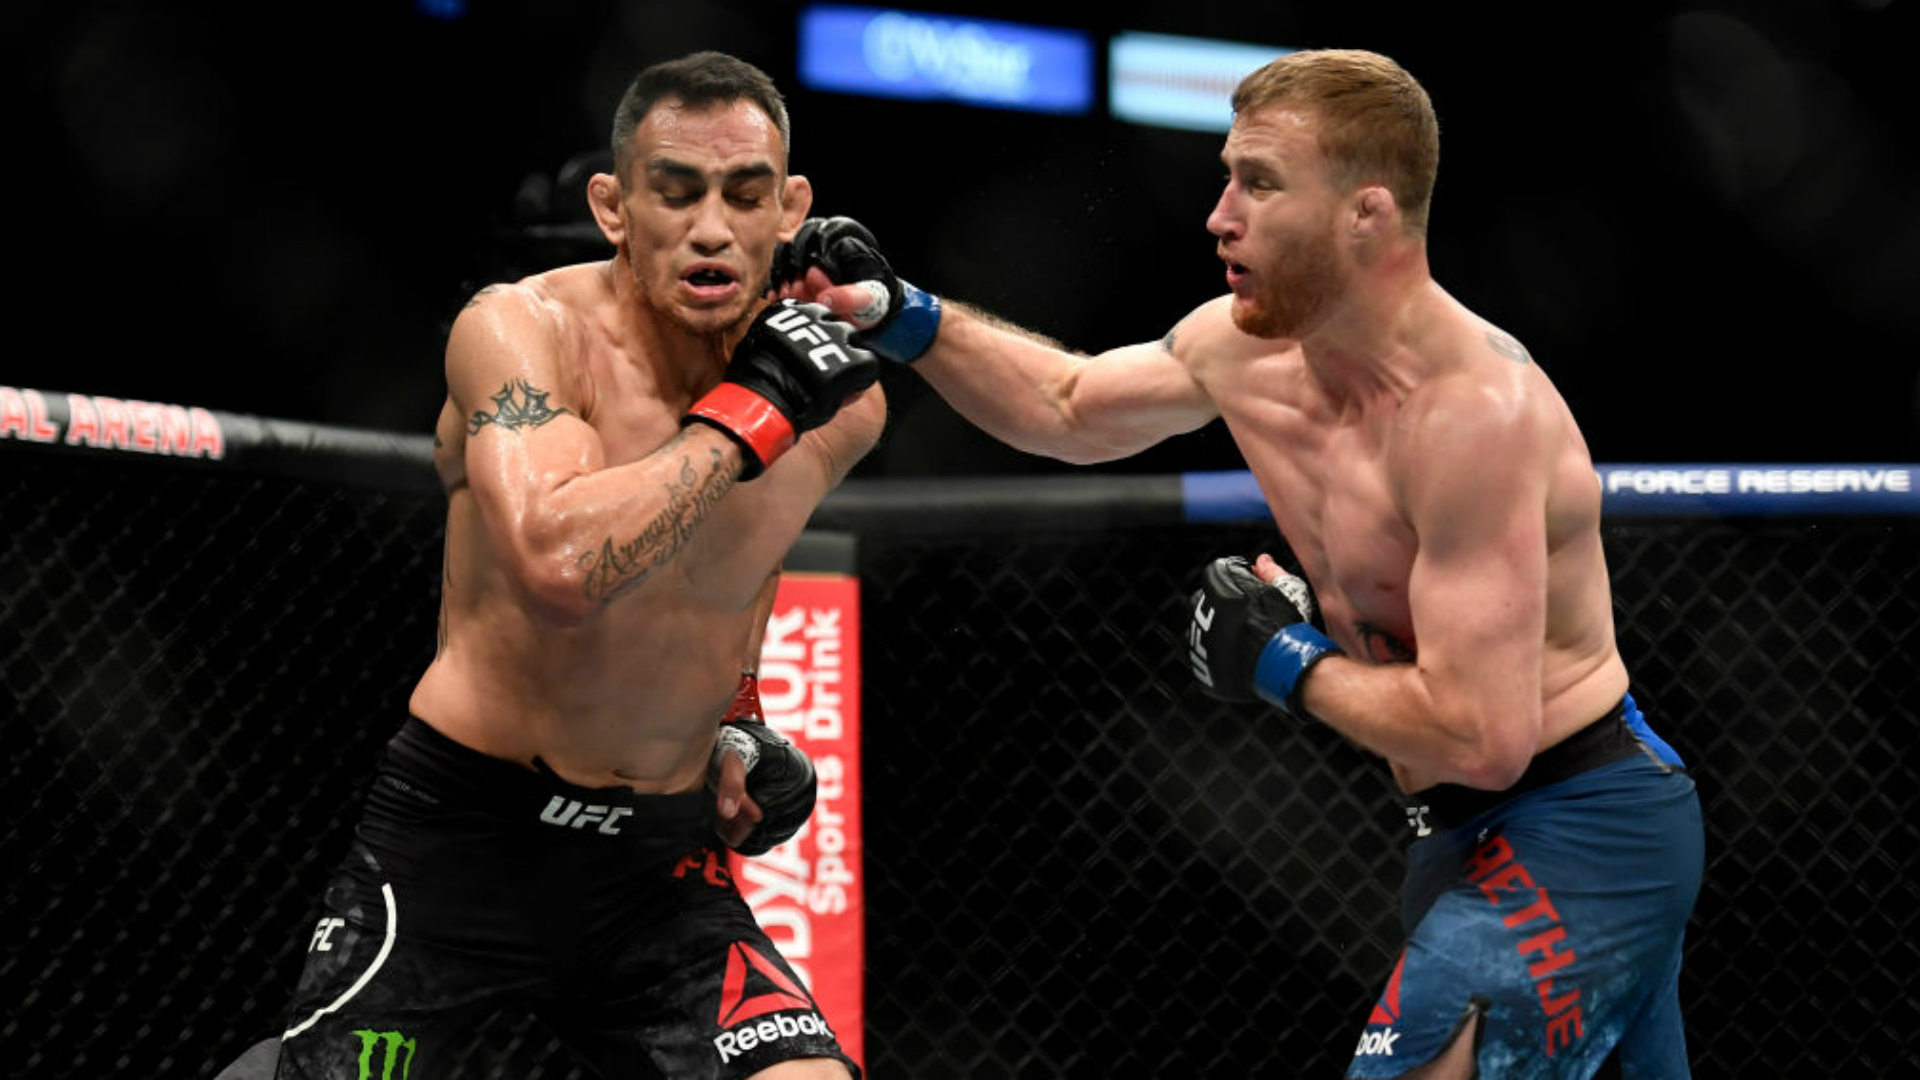 UFC 249 takeaways: Gaethje earns Khabib shot, what next for McGregor and is Cejudo really retired?